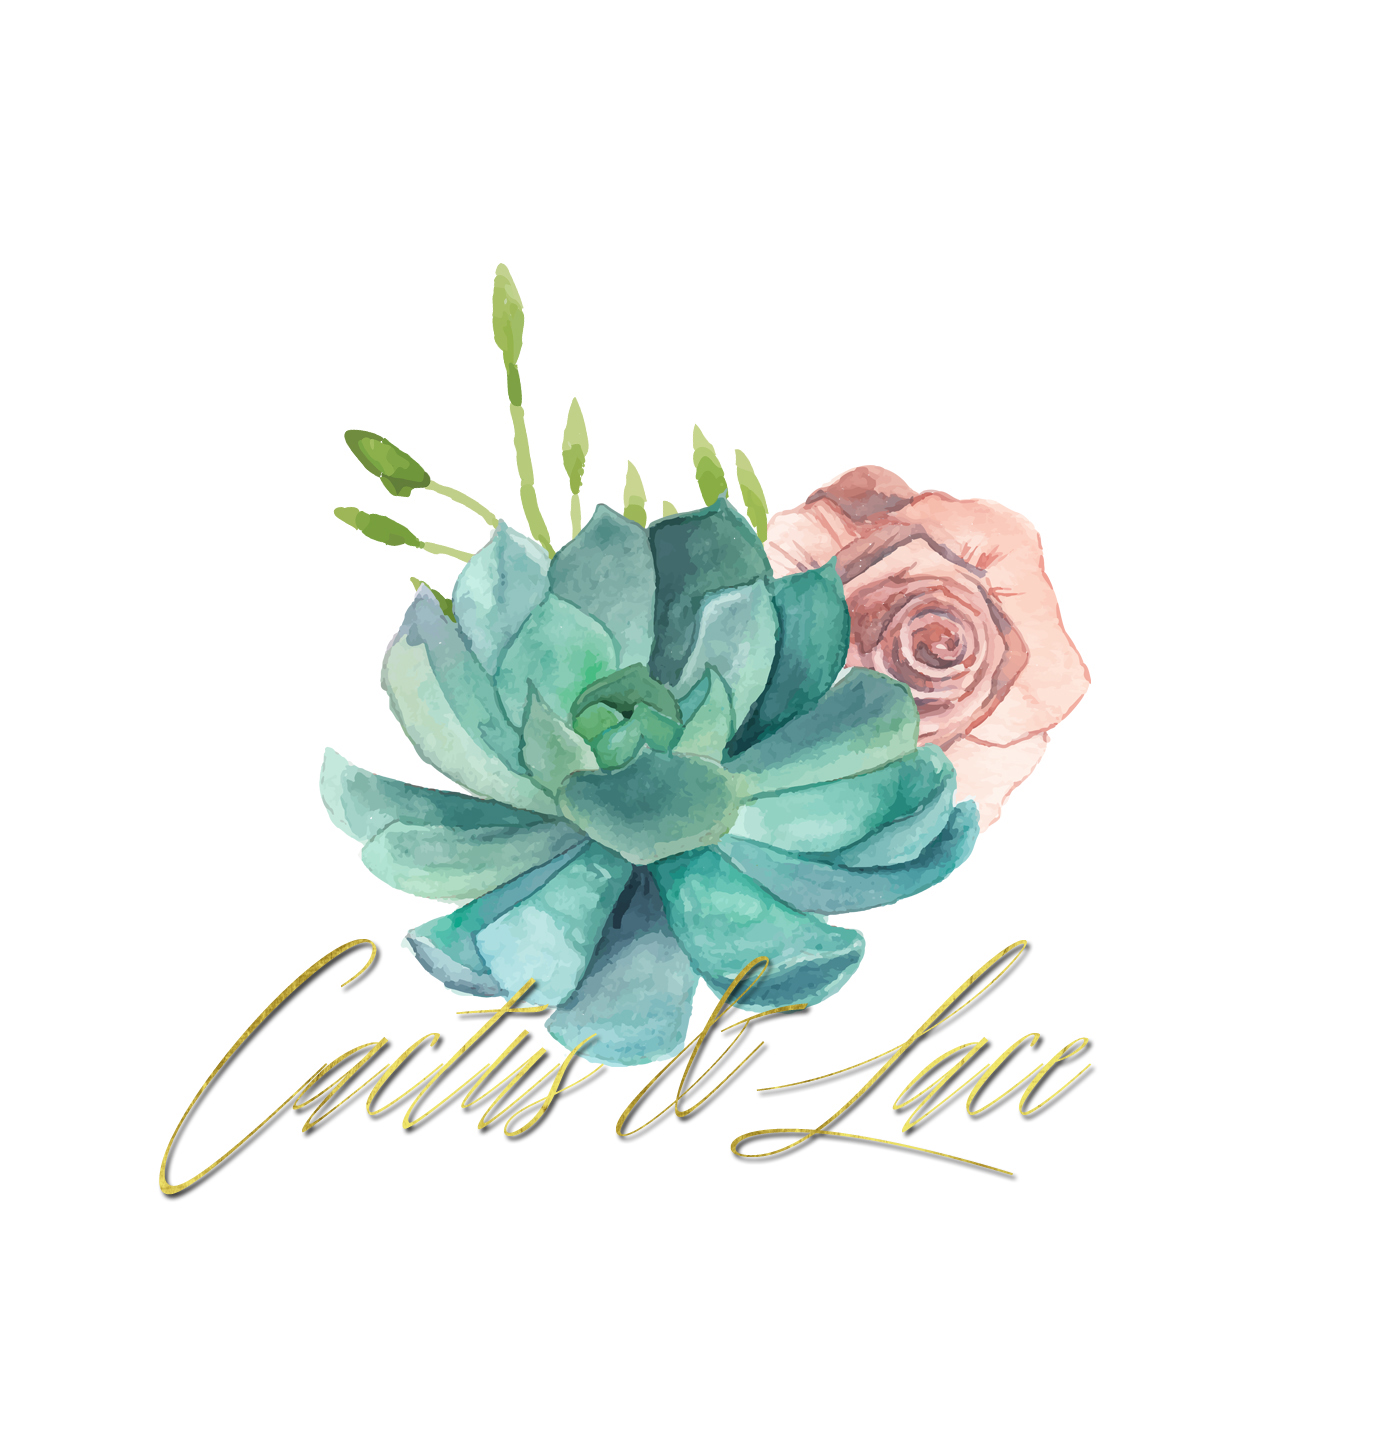 Cactus and Lace YouTube